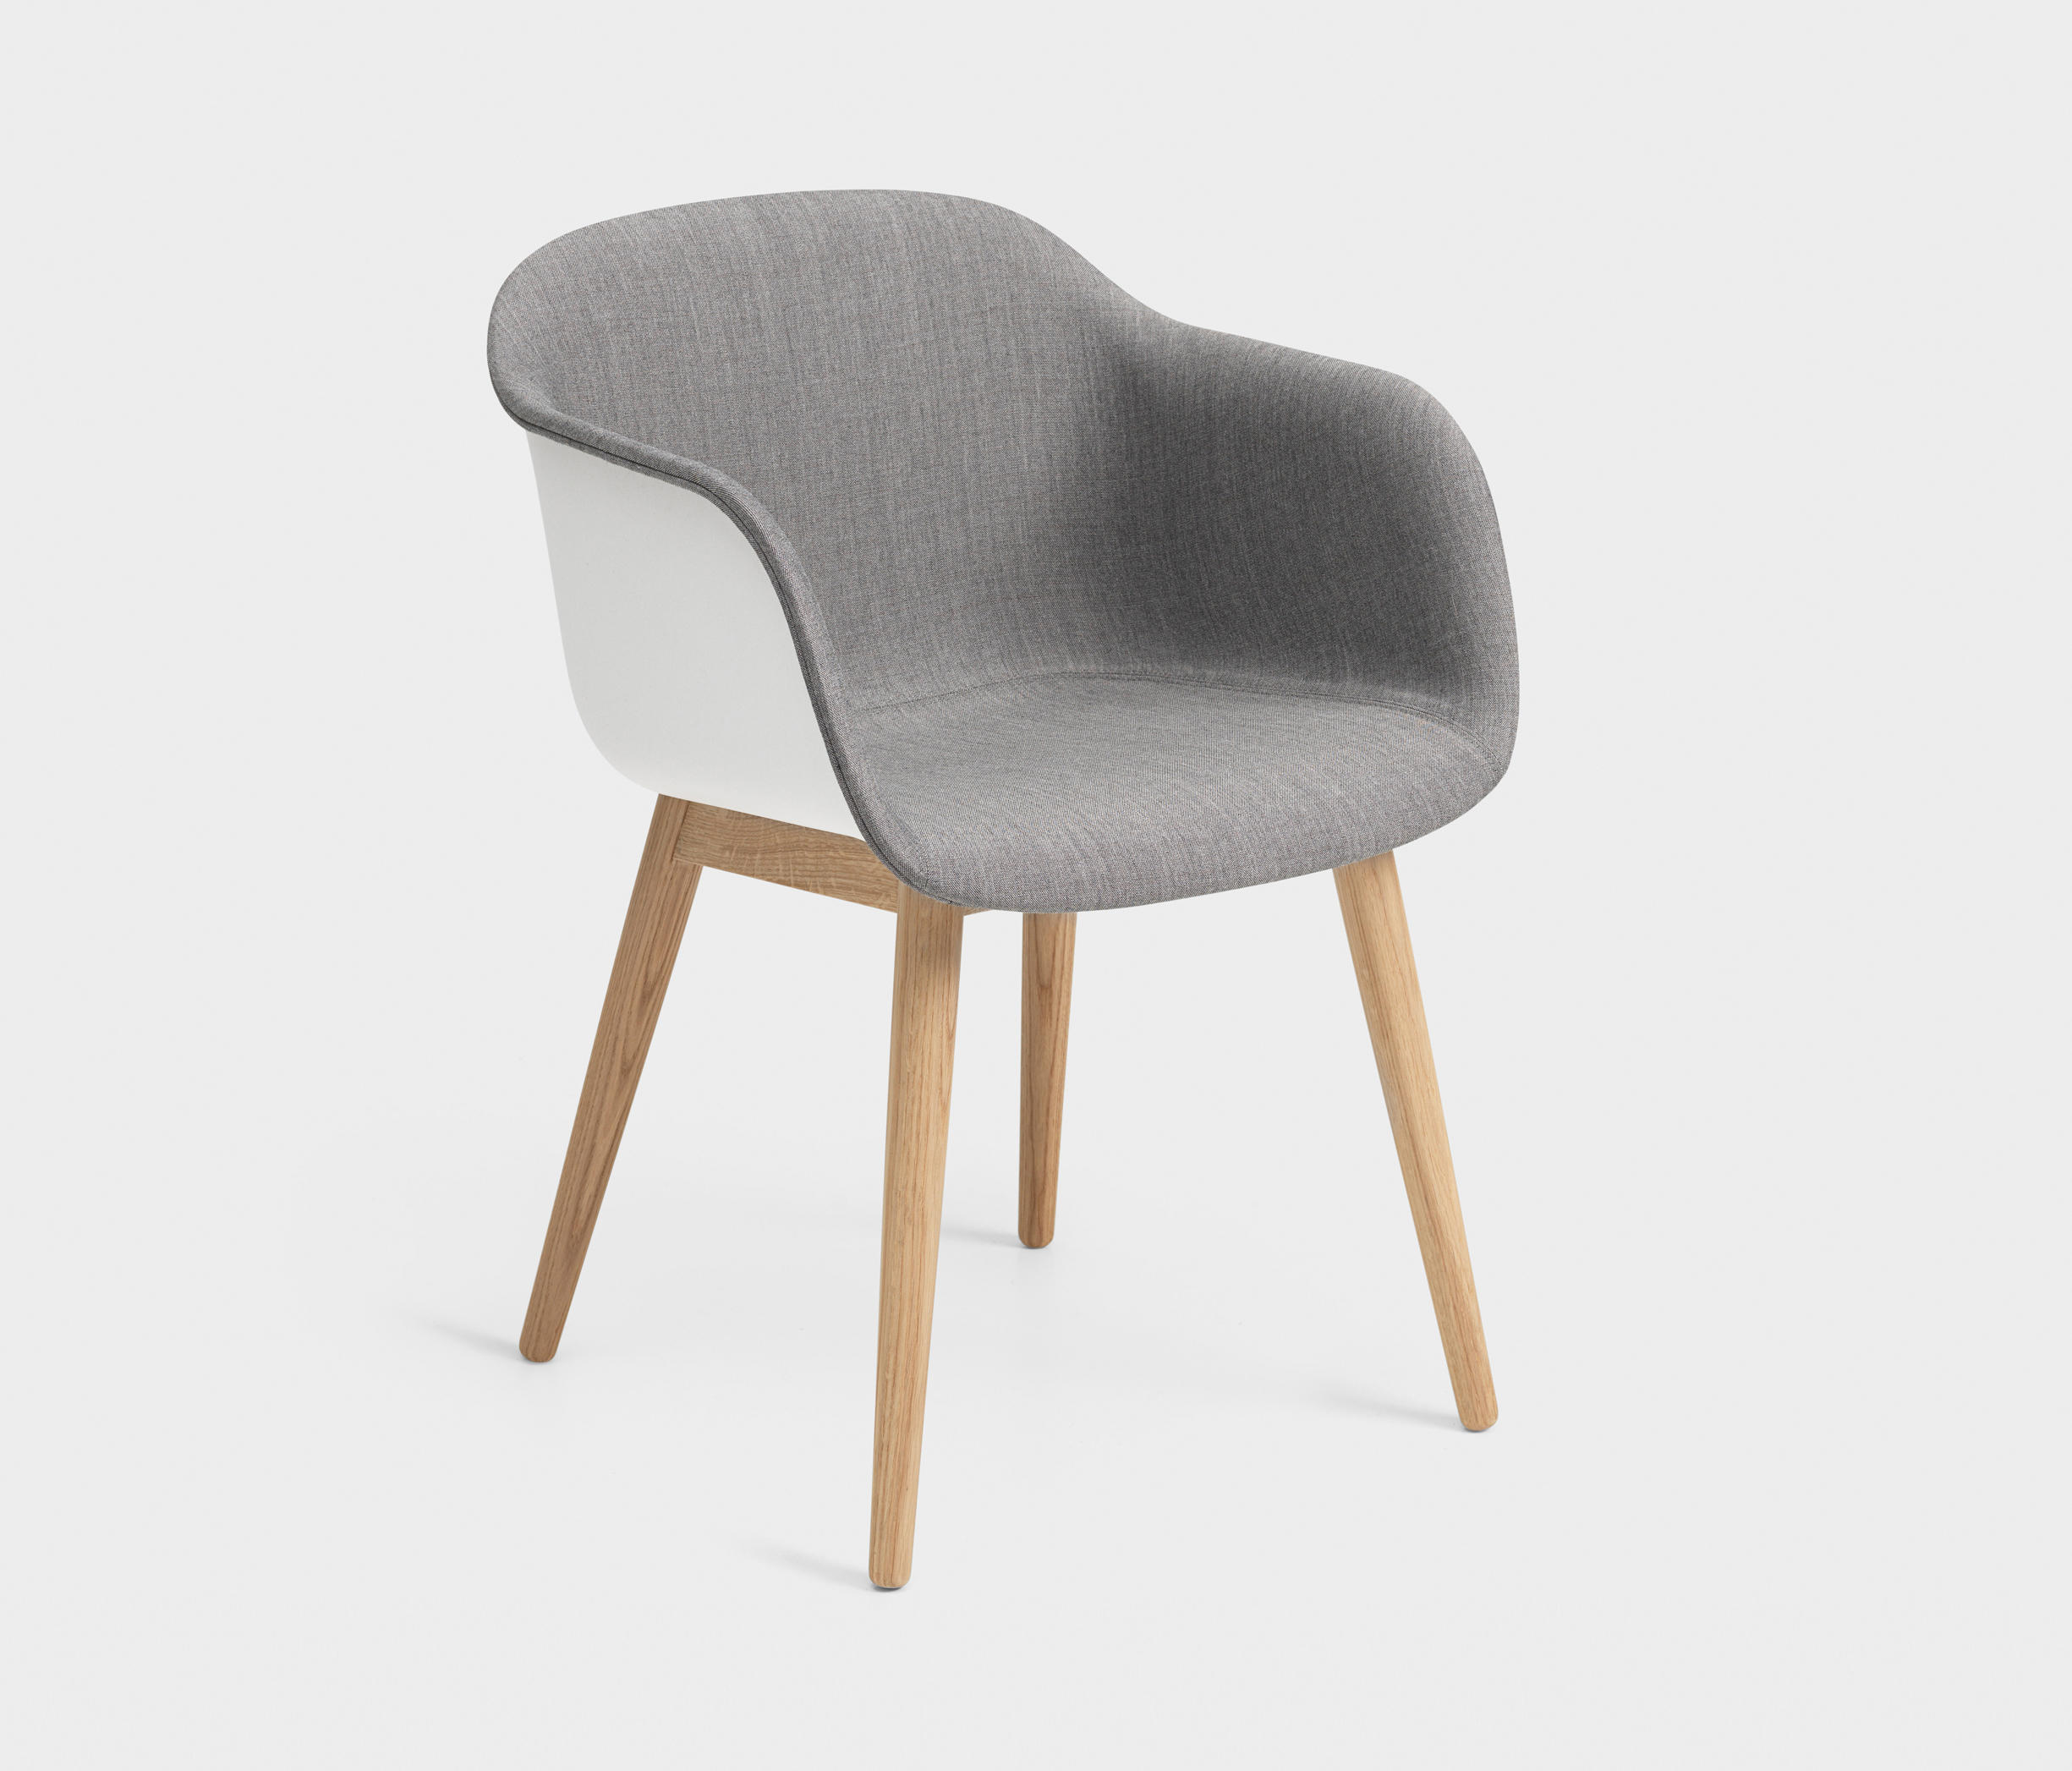 Wood Base Chairs ~ Fiber armchair wood base inside upholstered visitors